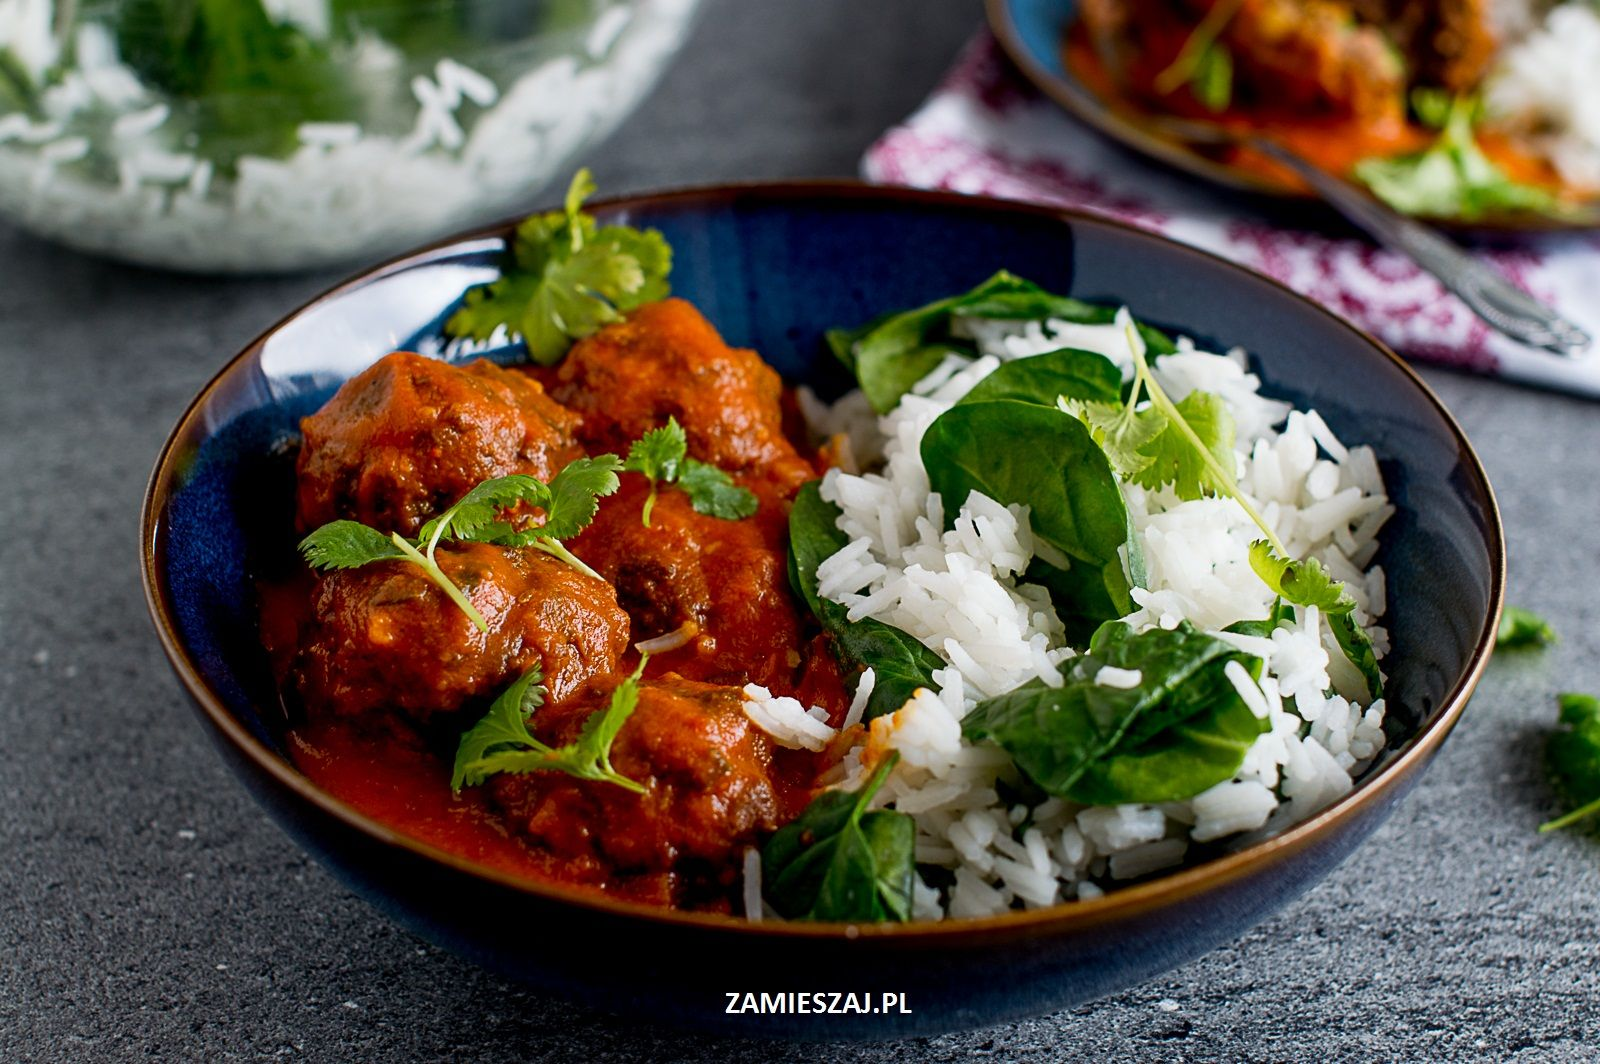 Beef kofta curry with lentil